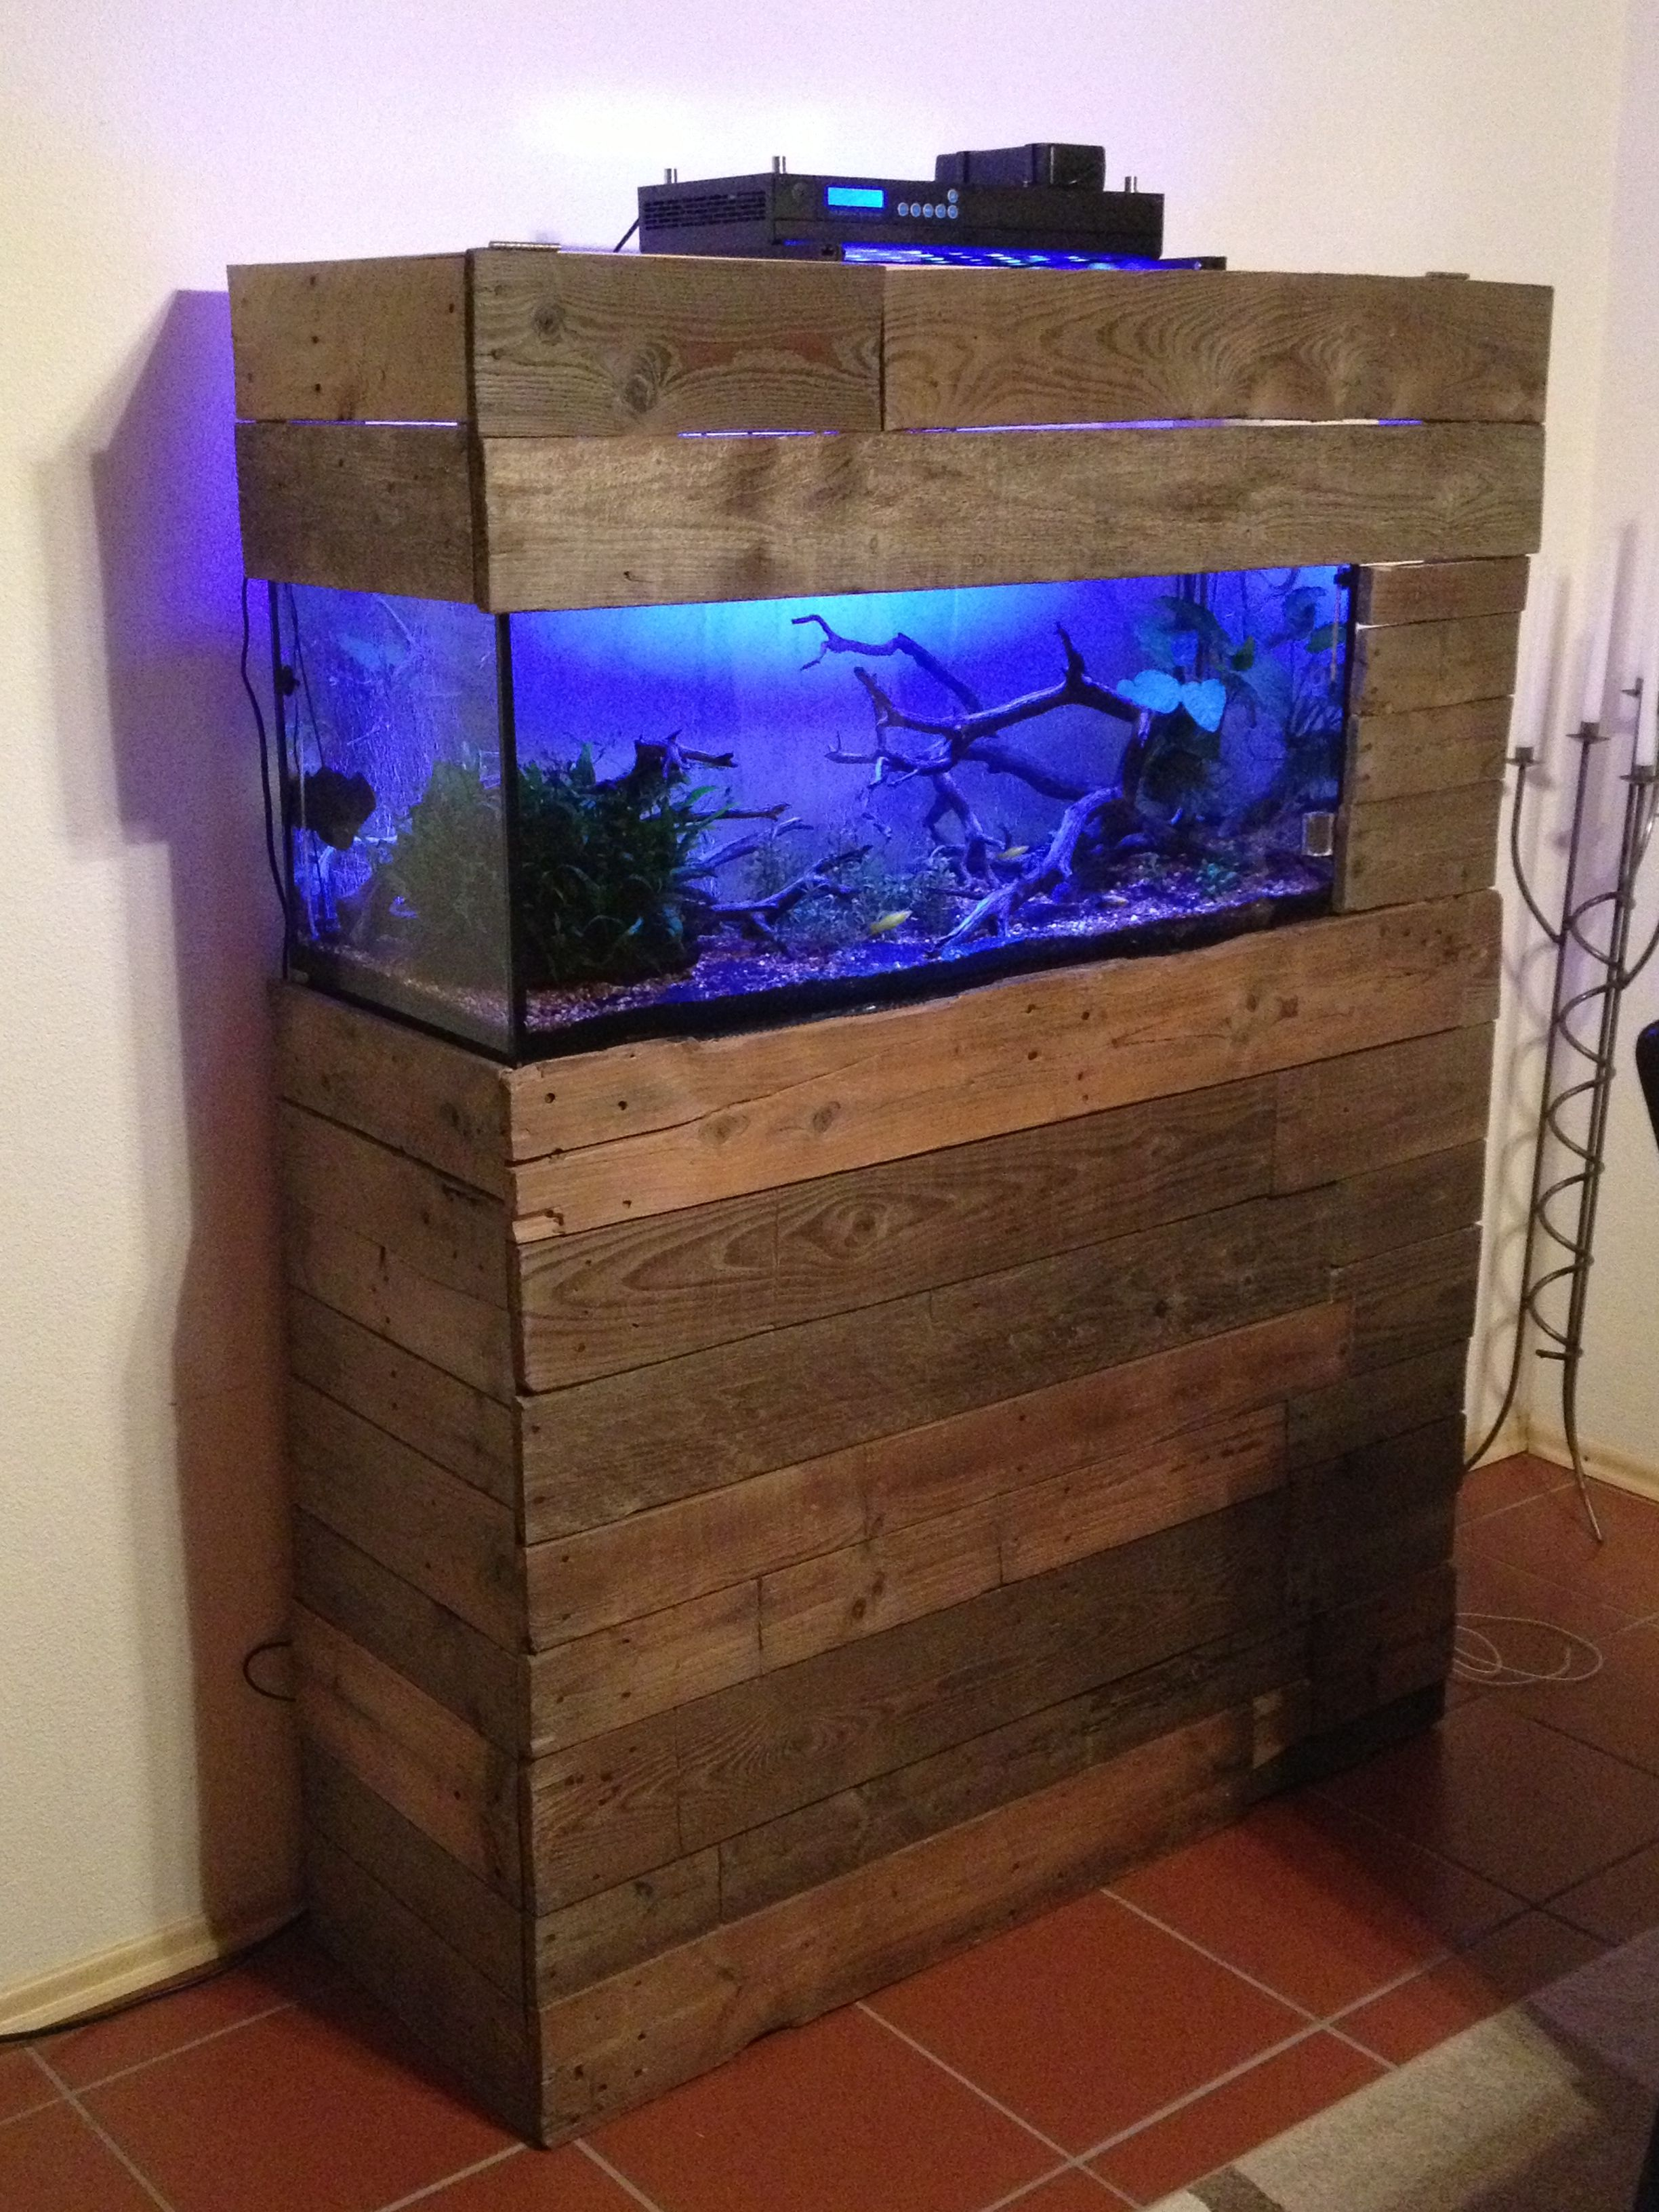 Cool Fish Tanks On Stands 18 Photos Of The Adding